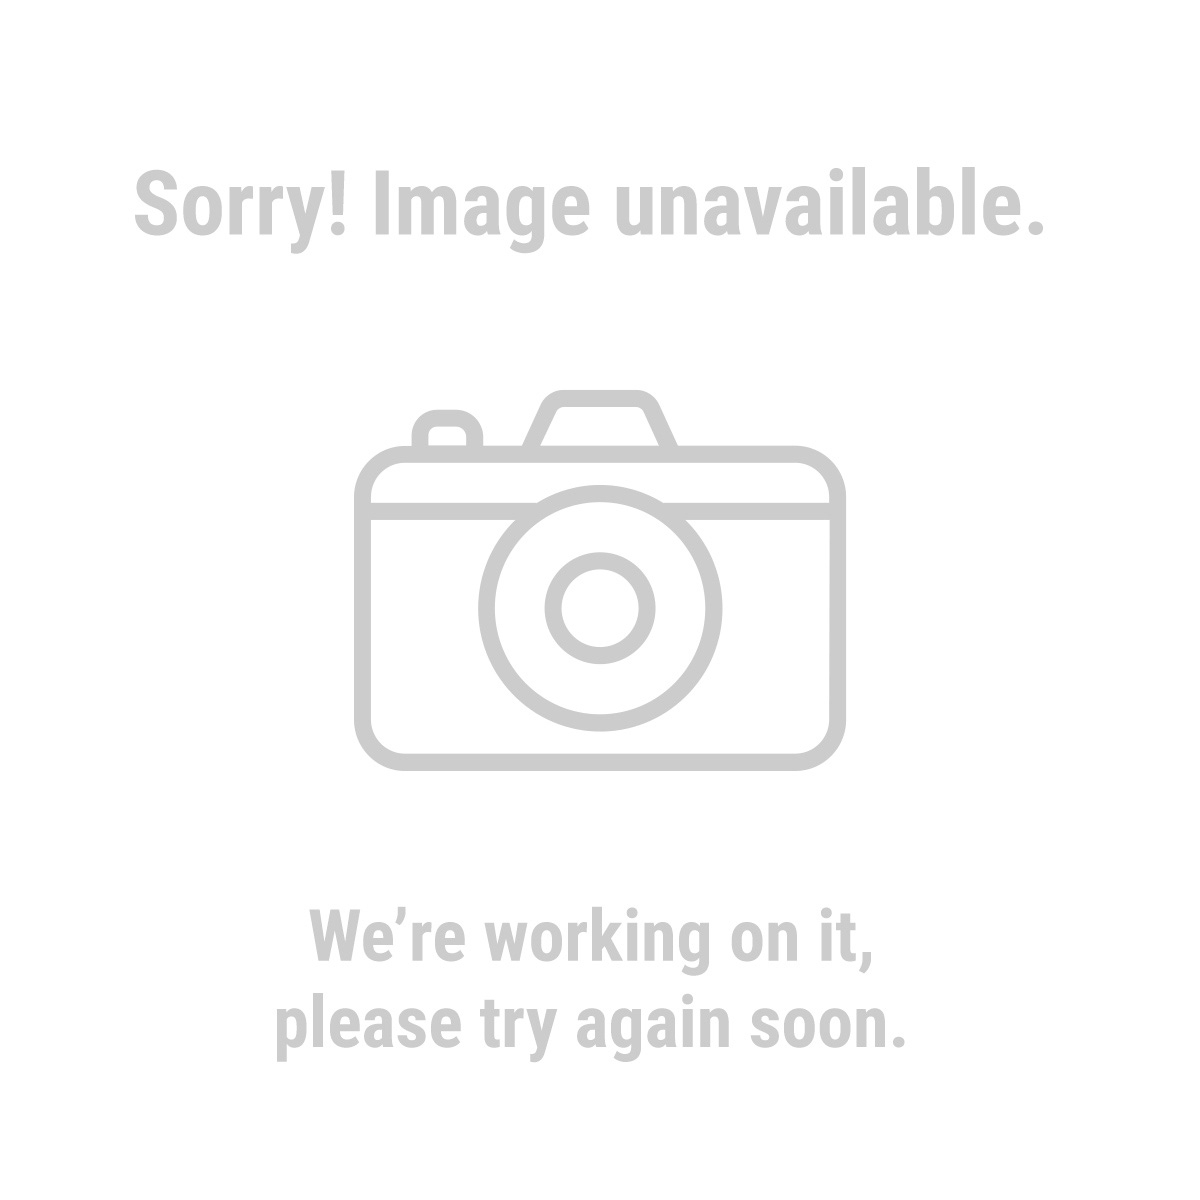 Storehouse 95807 ABS Storage Organizer